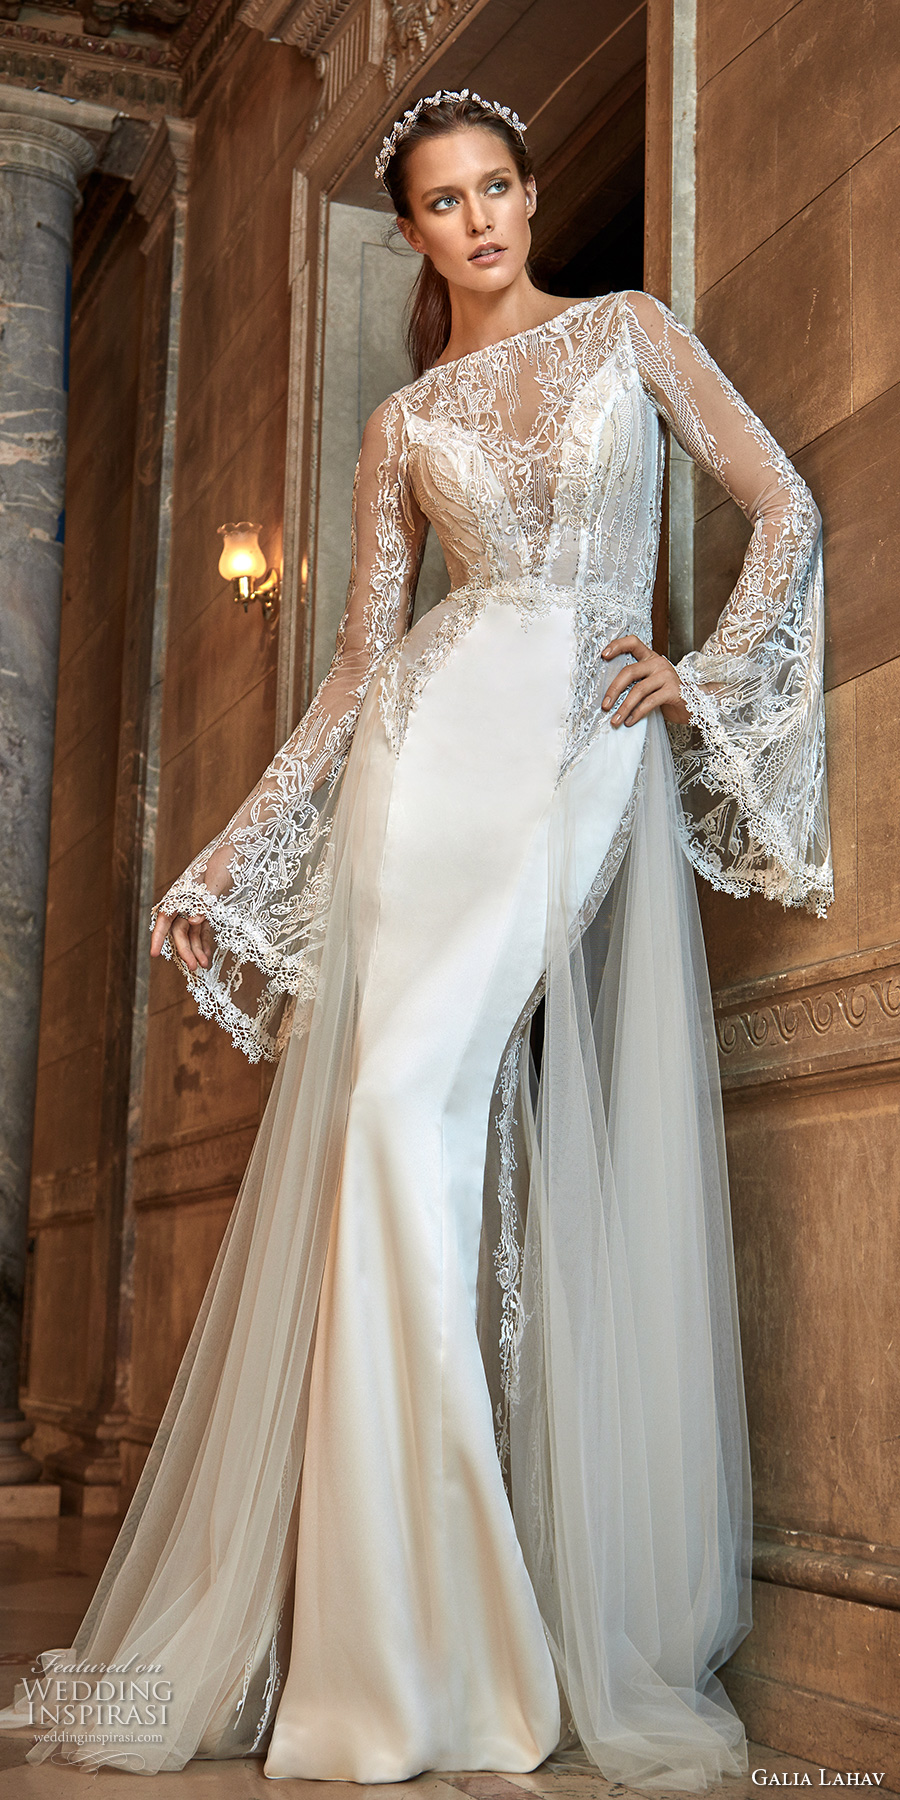 Galia Lahav Fall 2017 Bridal Long Bell Sleeves Illusion Bateau Deep Plunging Sweetheart Neckline Satin Skirt